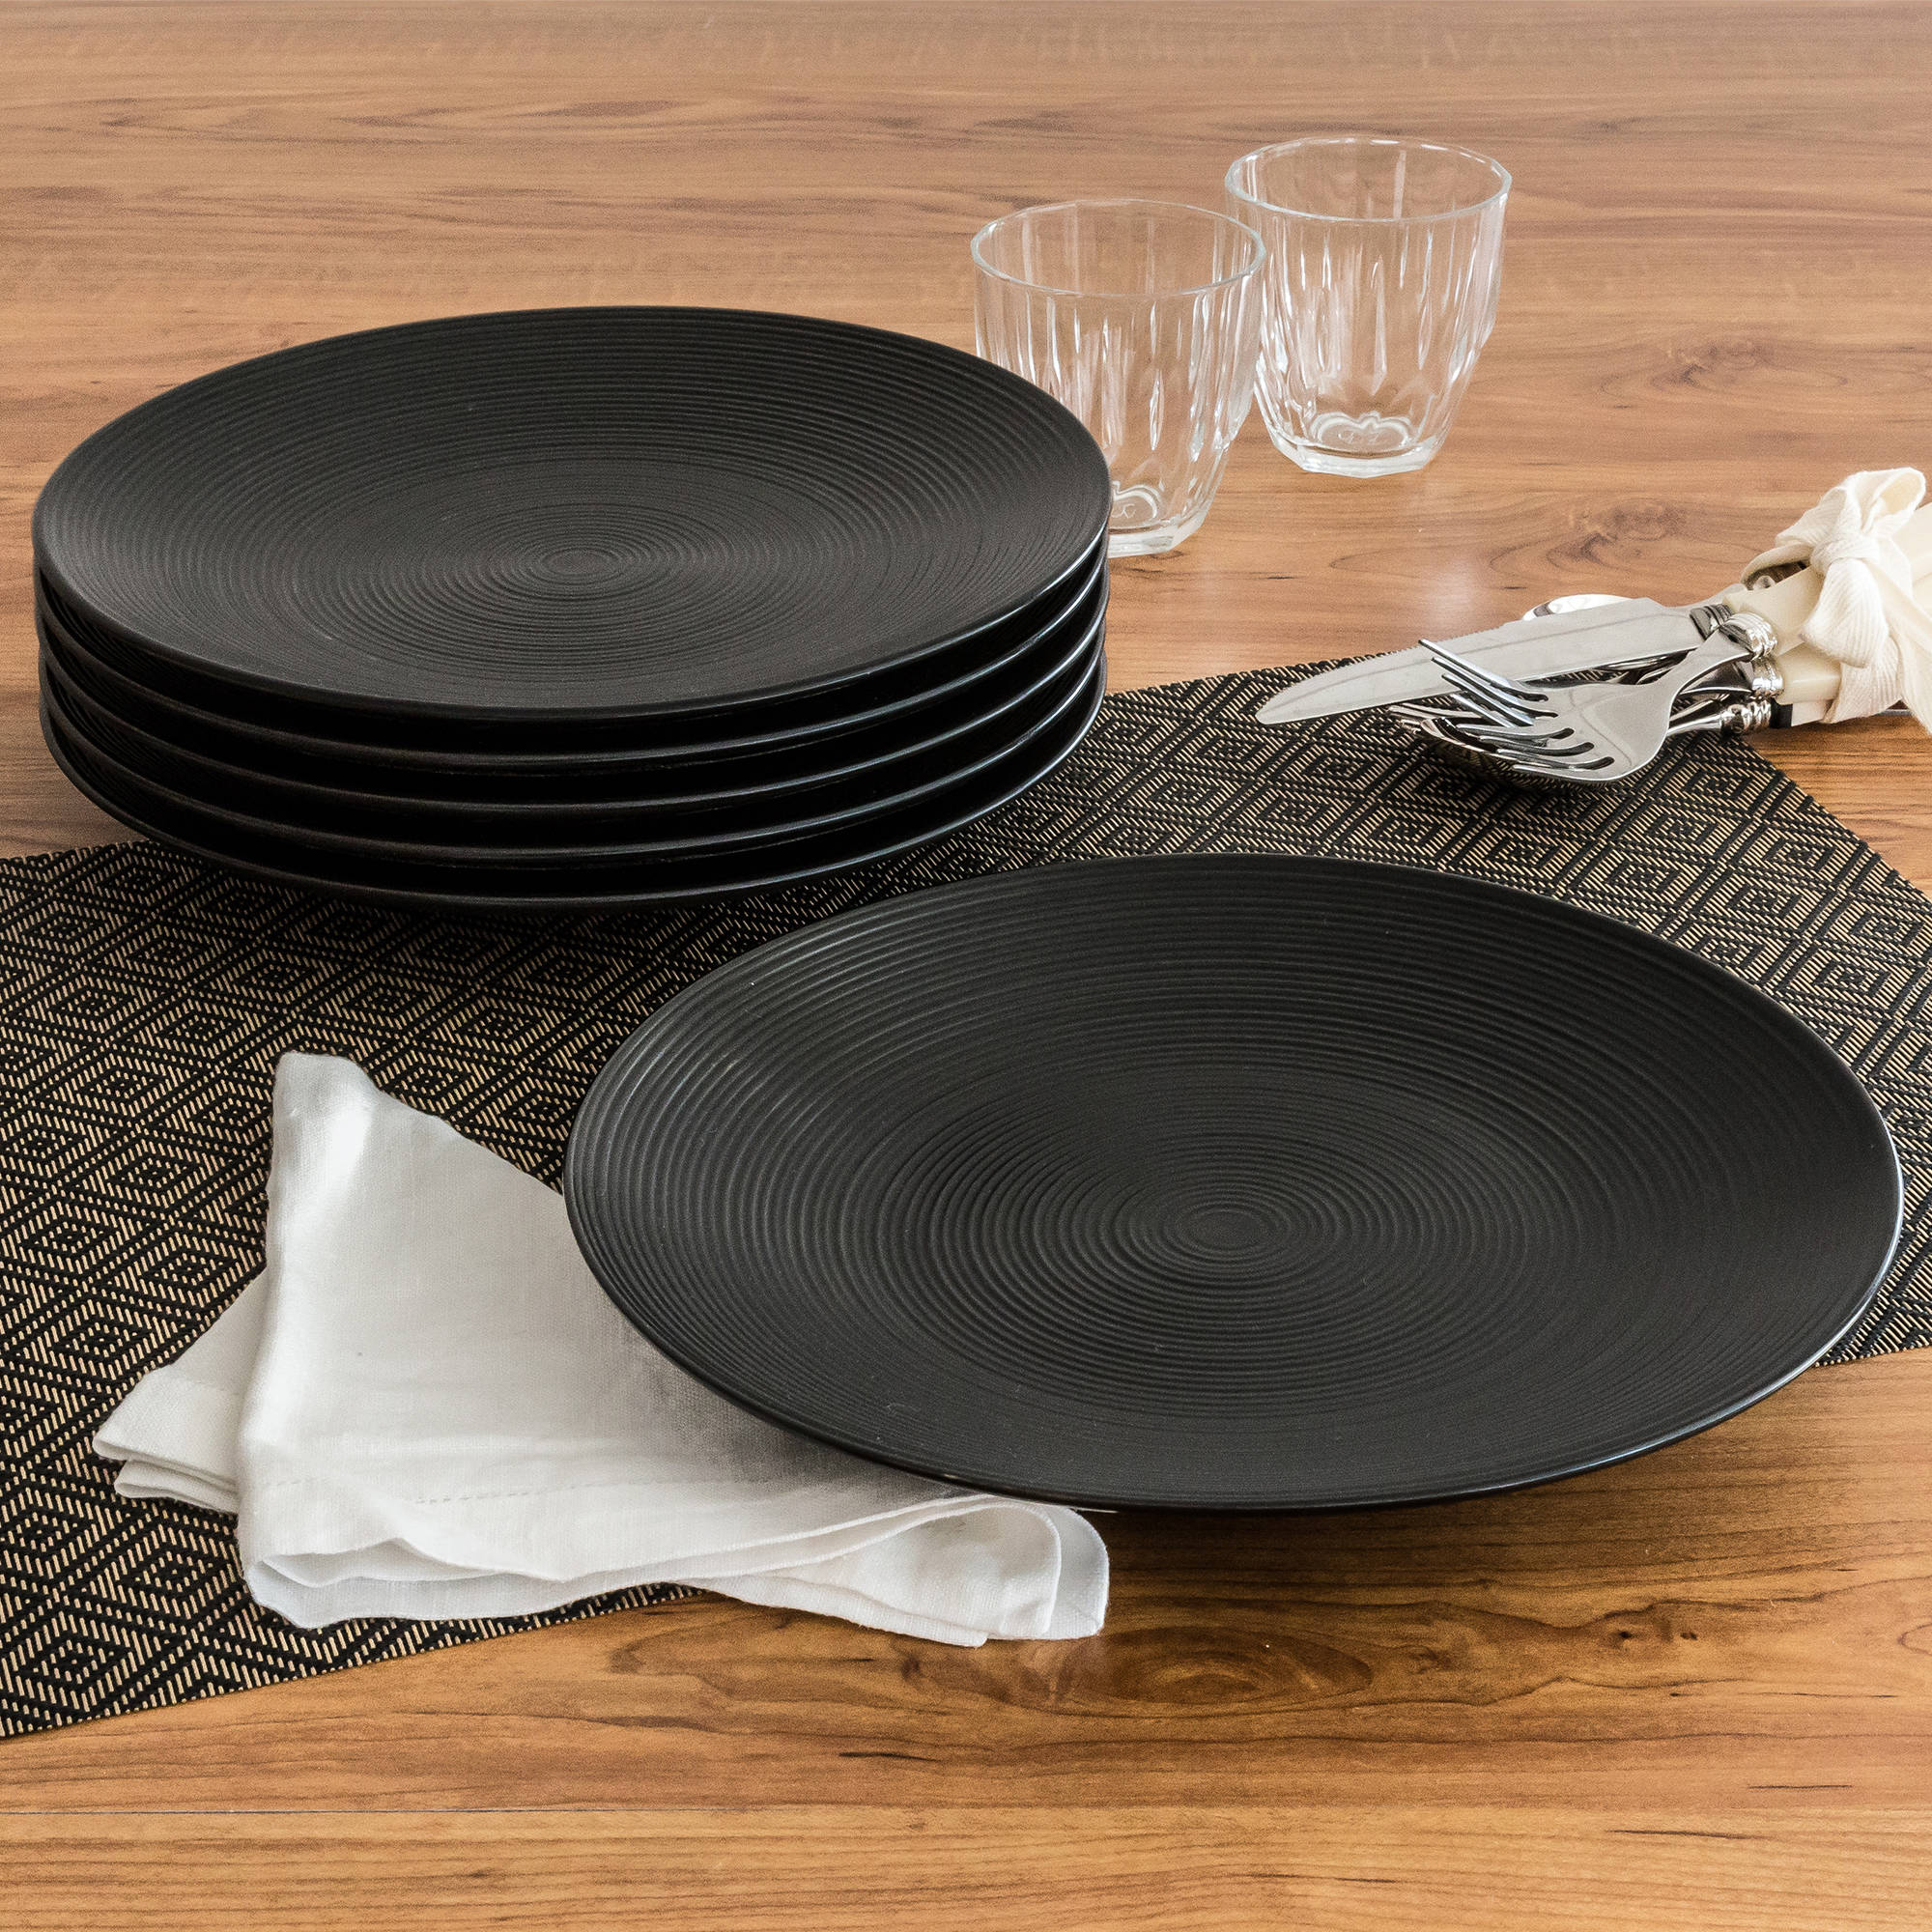 Better Homes and Gardens Matte Swirl Dinner Plates Black Set of 6 - Walmart.com & Better Homes and Gardens Matte Swirl Dinner Plates Black Set of 6 ...